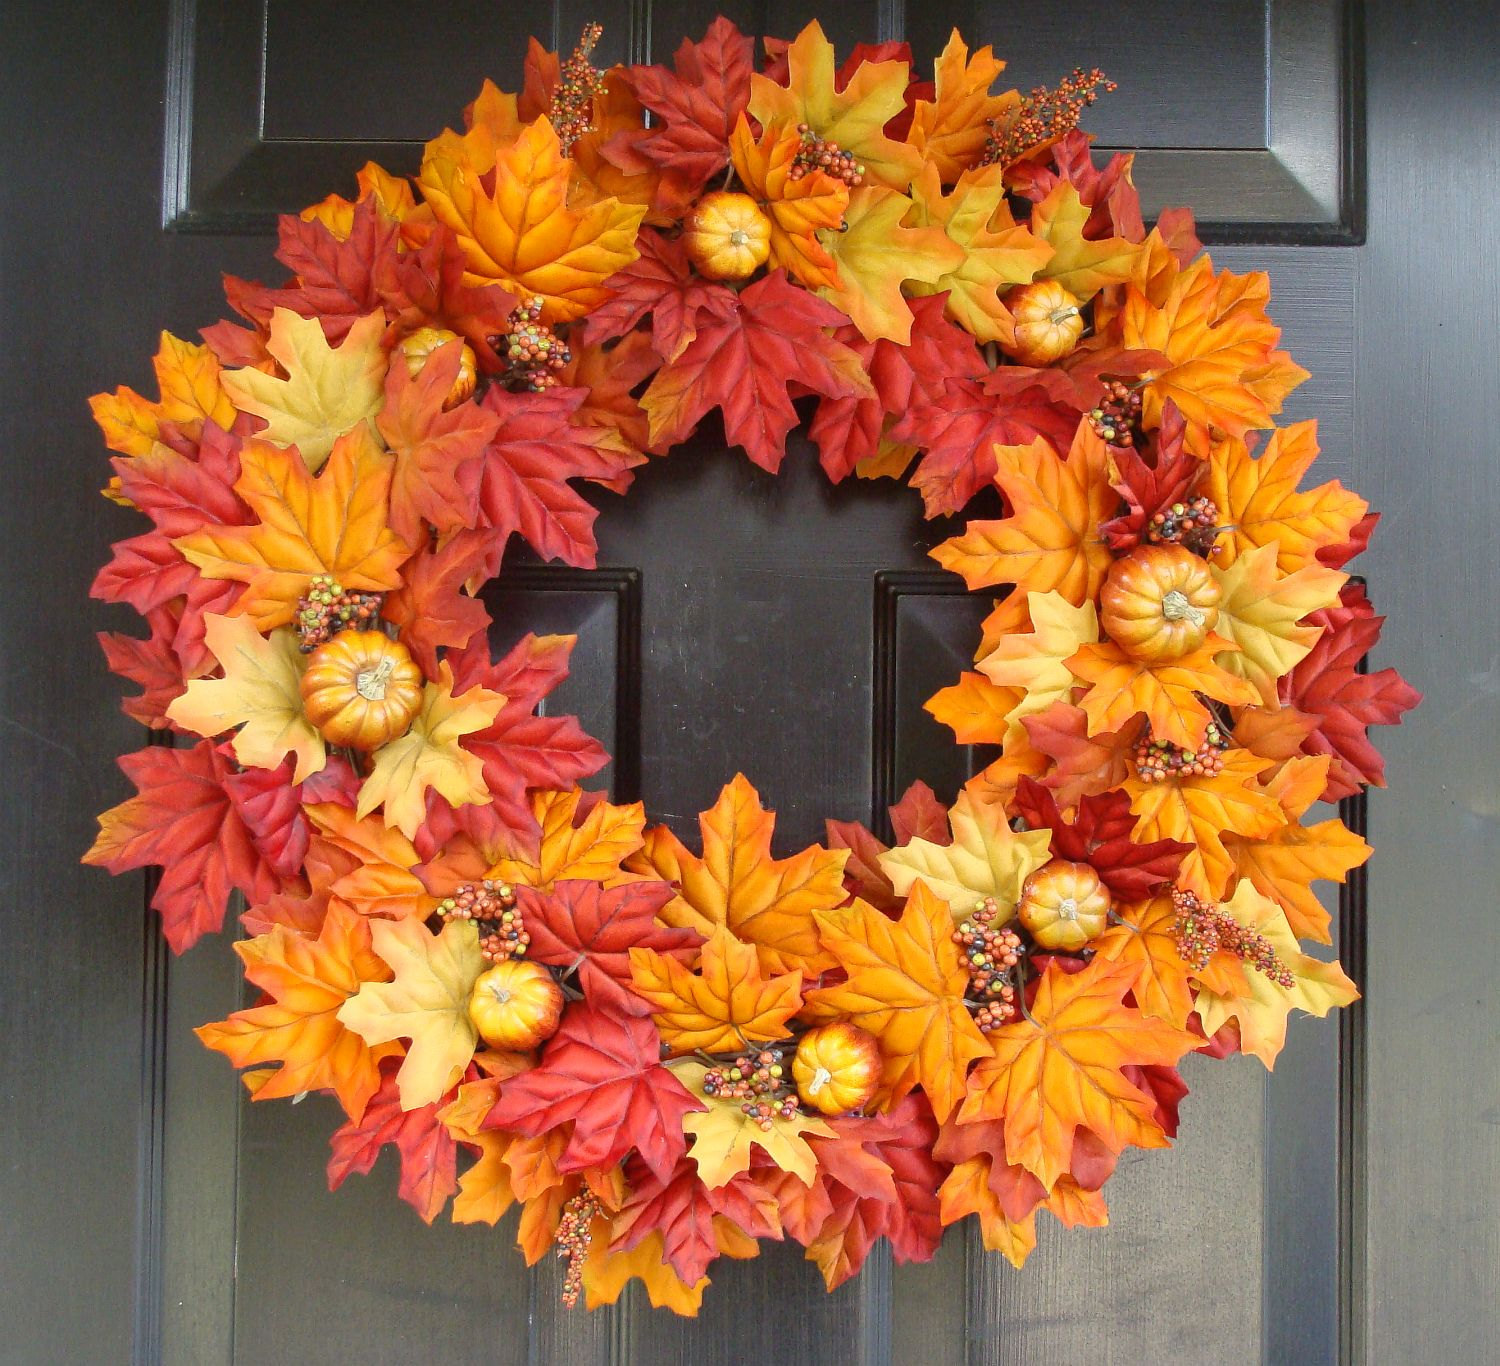 Autumn Wreaths Autumn Weddings Pics